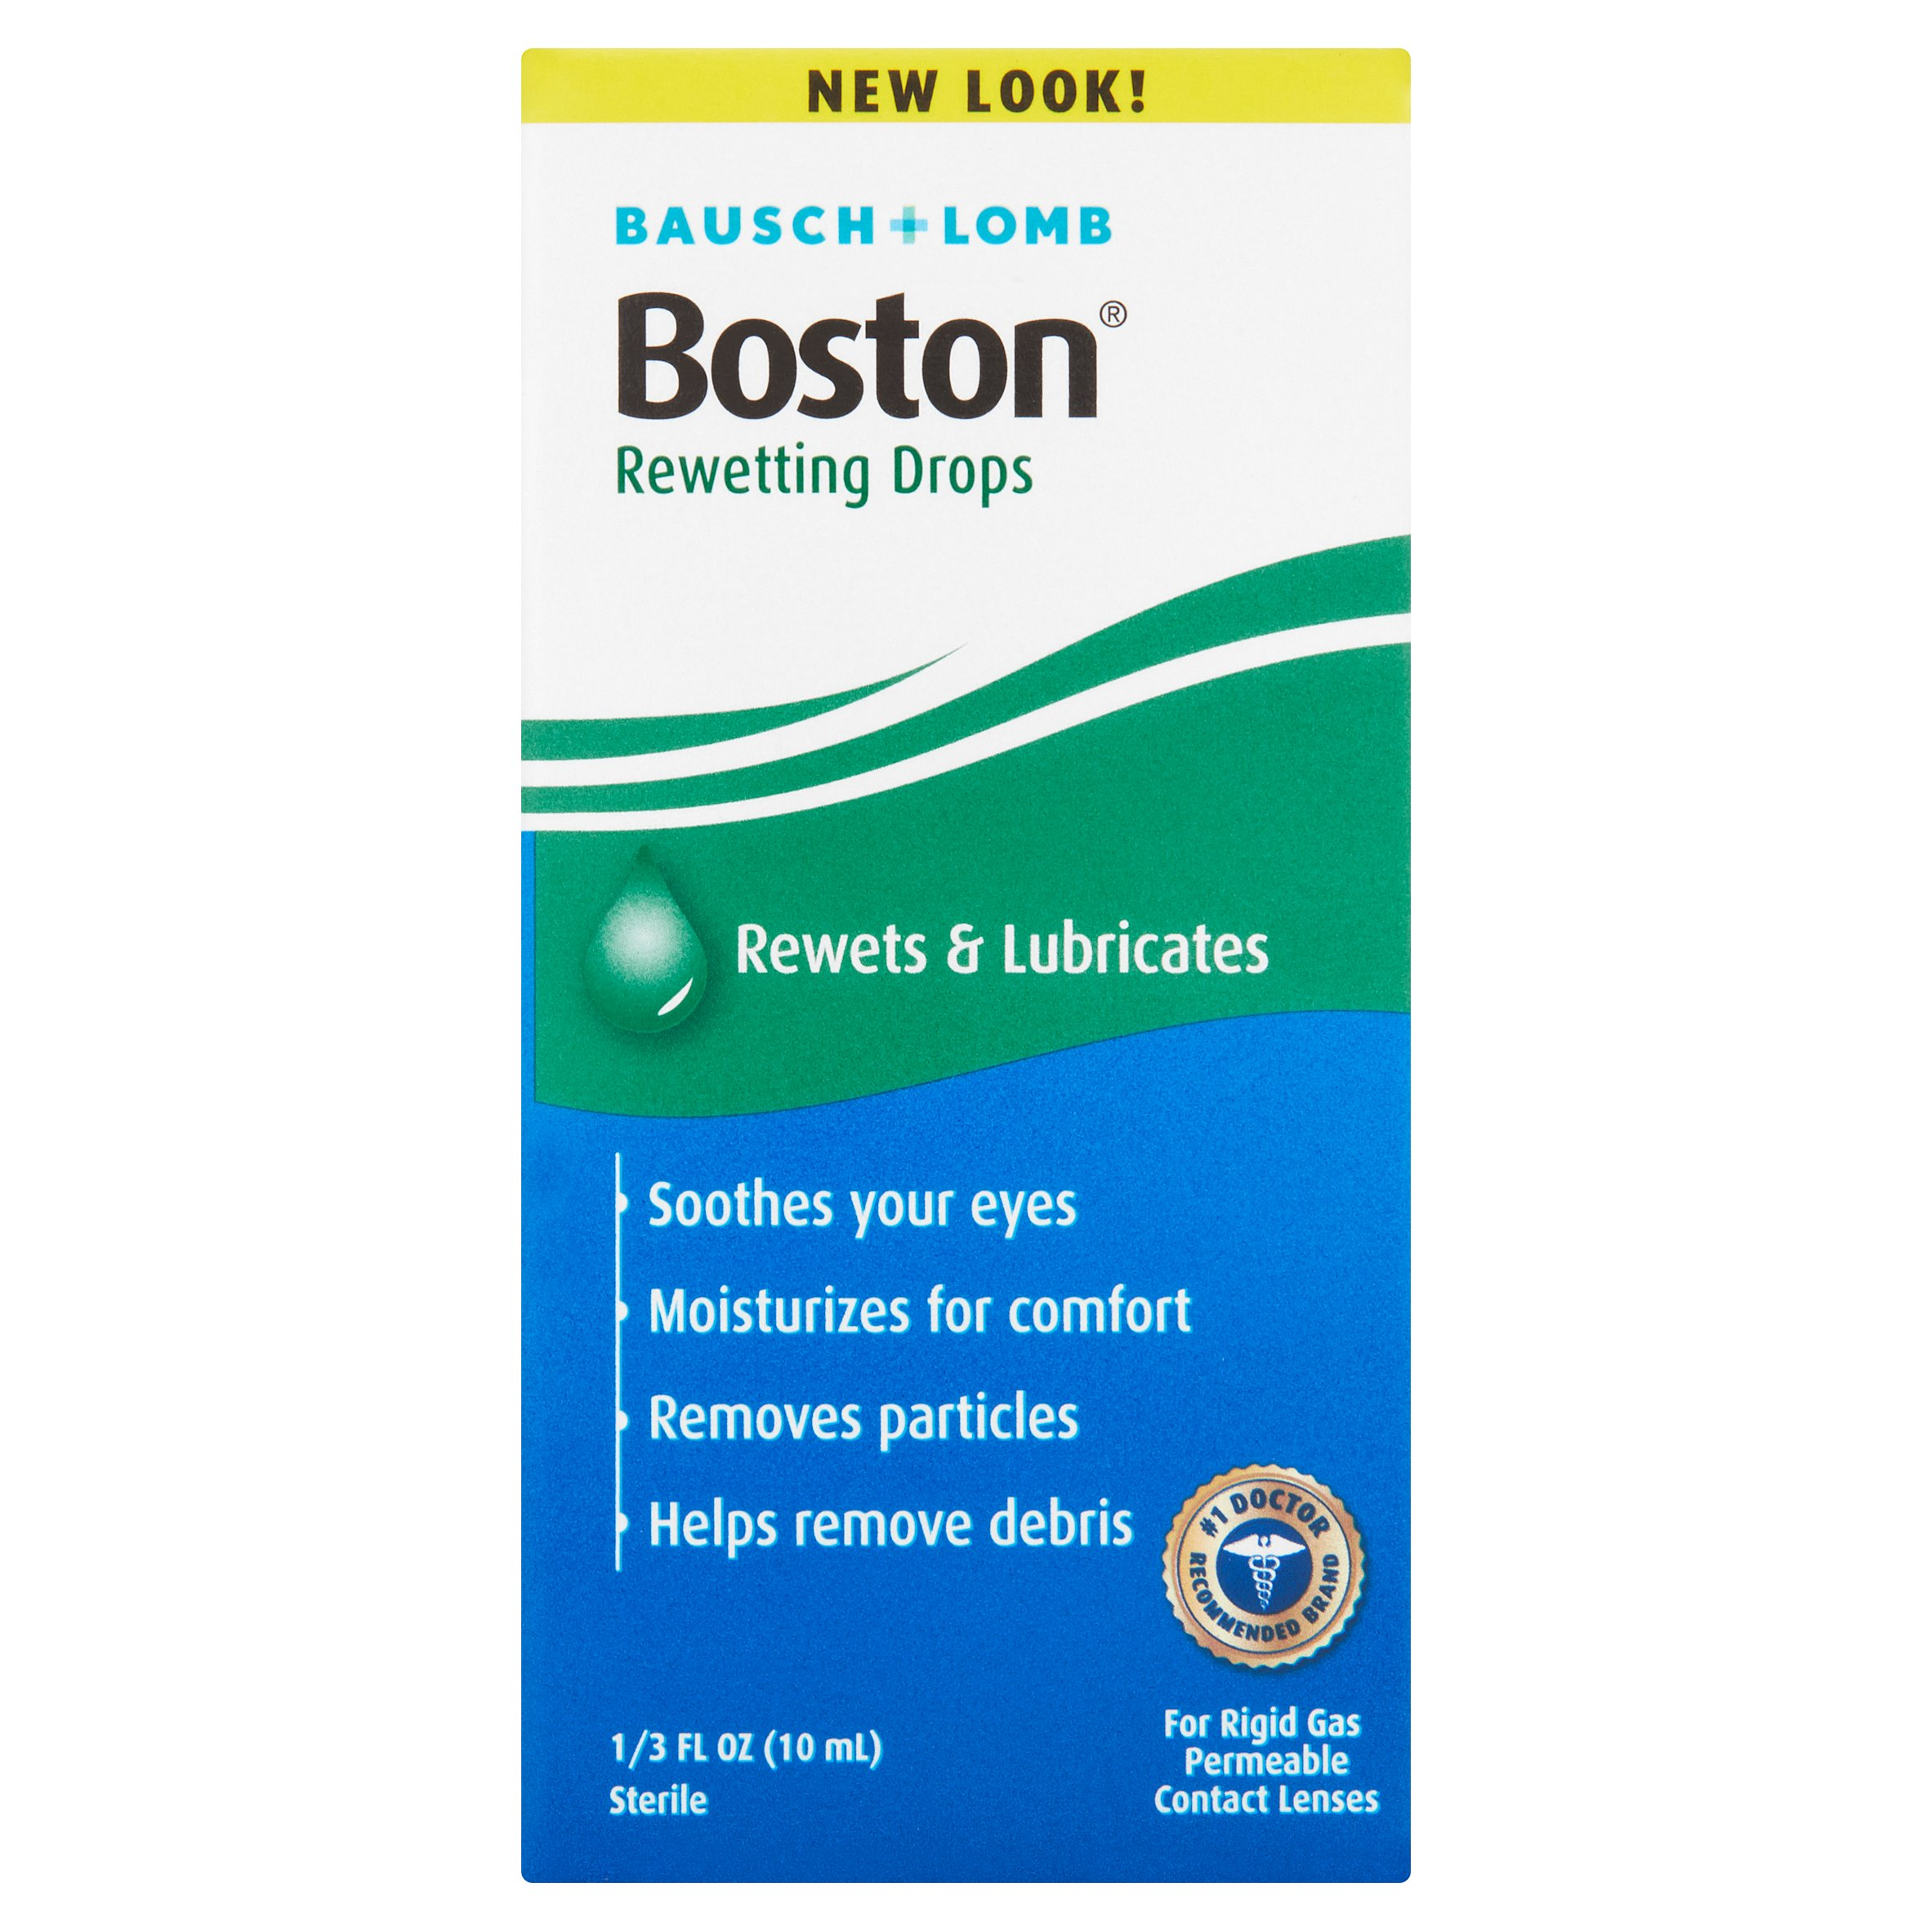 Bausch + Lomb Boston Rewets & Lubricates Rewetting Drops, 1/3 fl oz